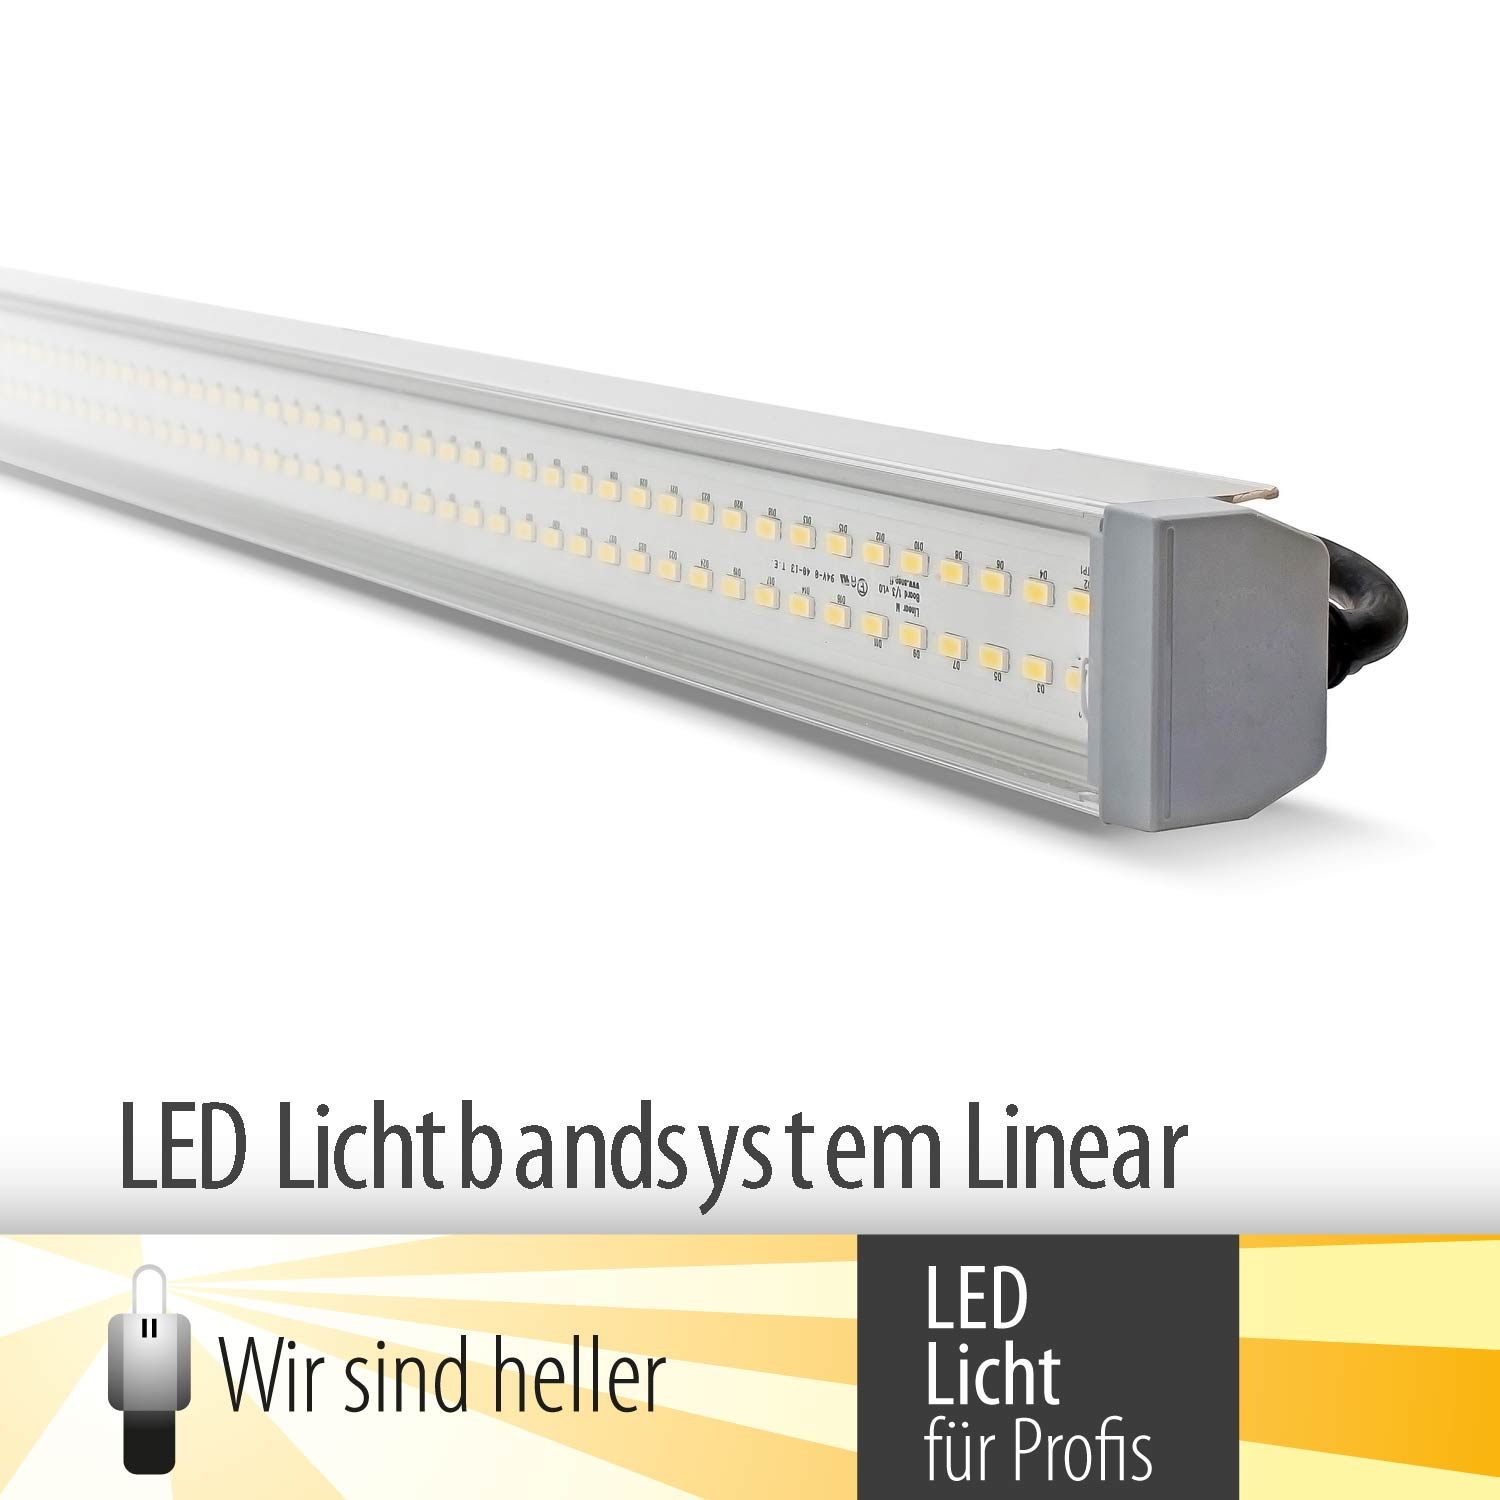 LED Lichtbandsystem Linear